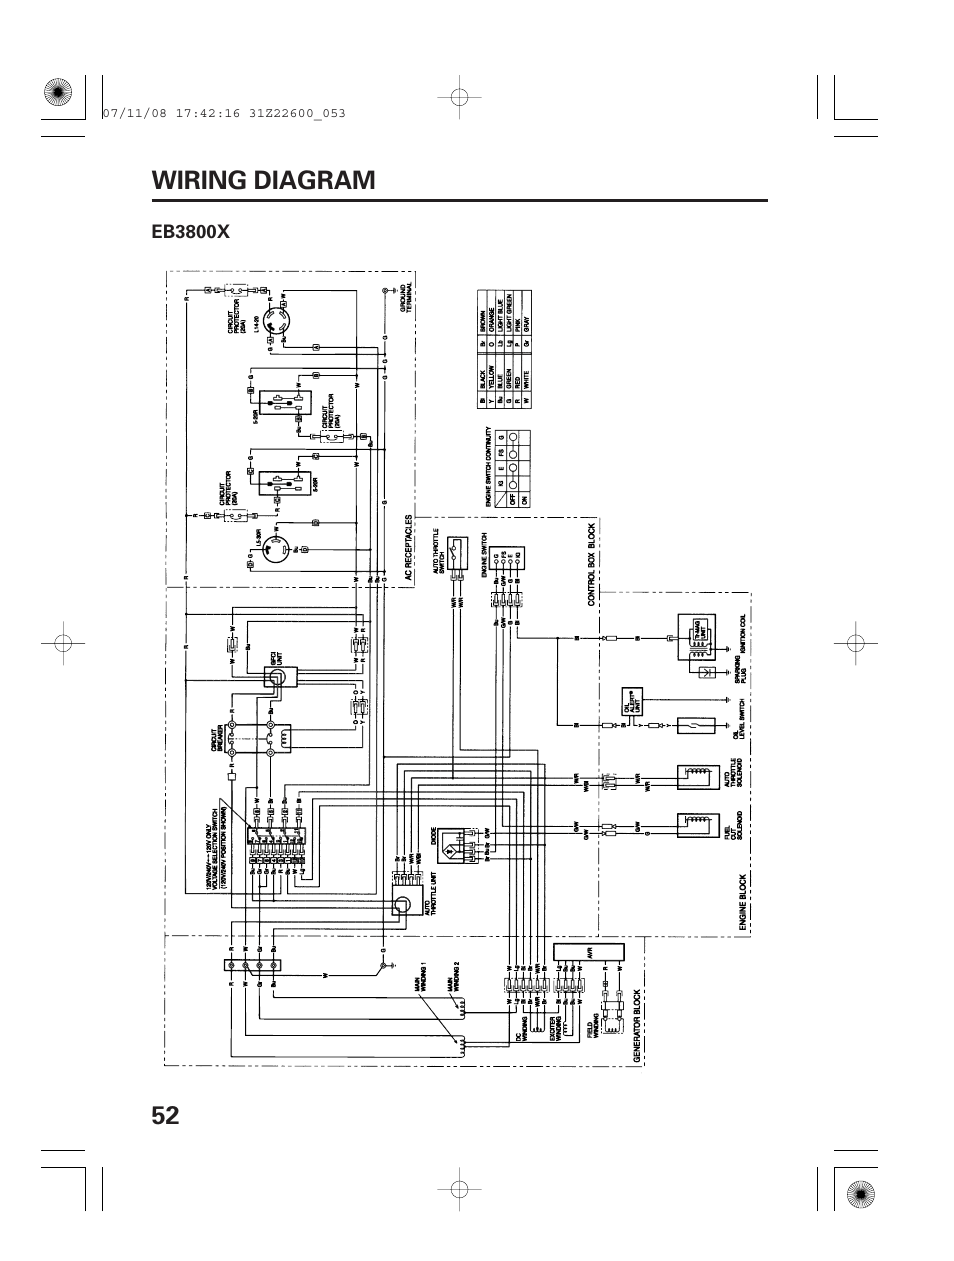 safc ii instruction manual wiring diagram